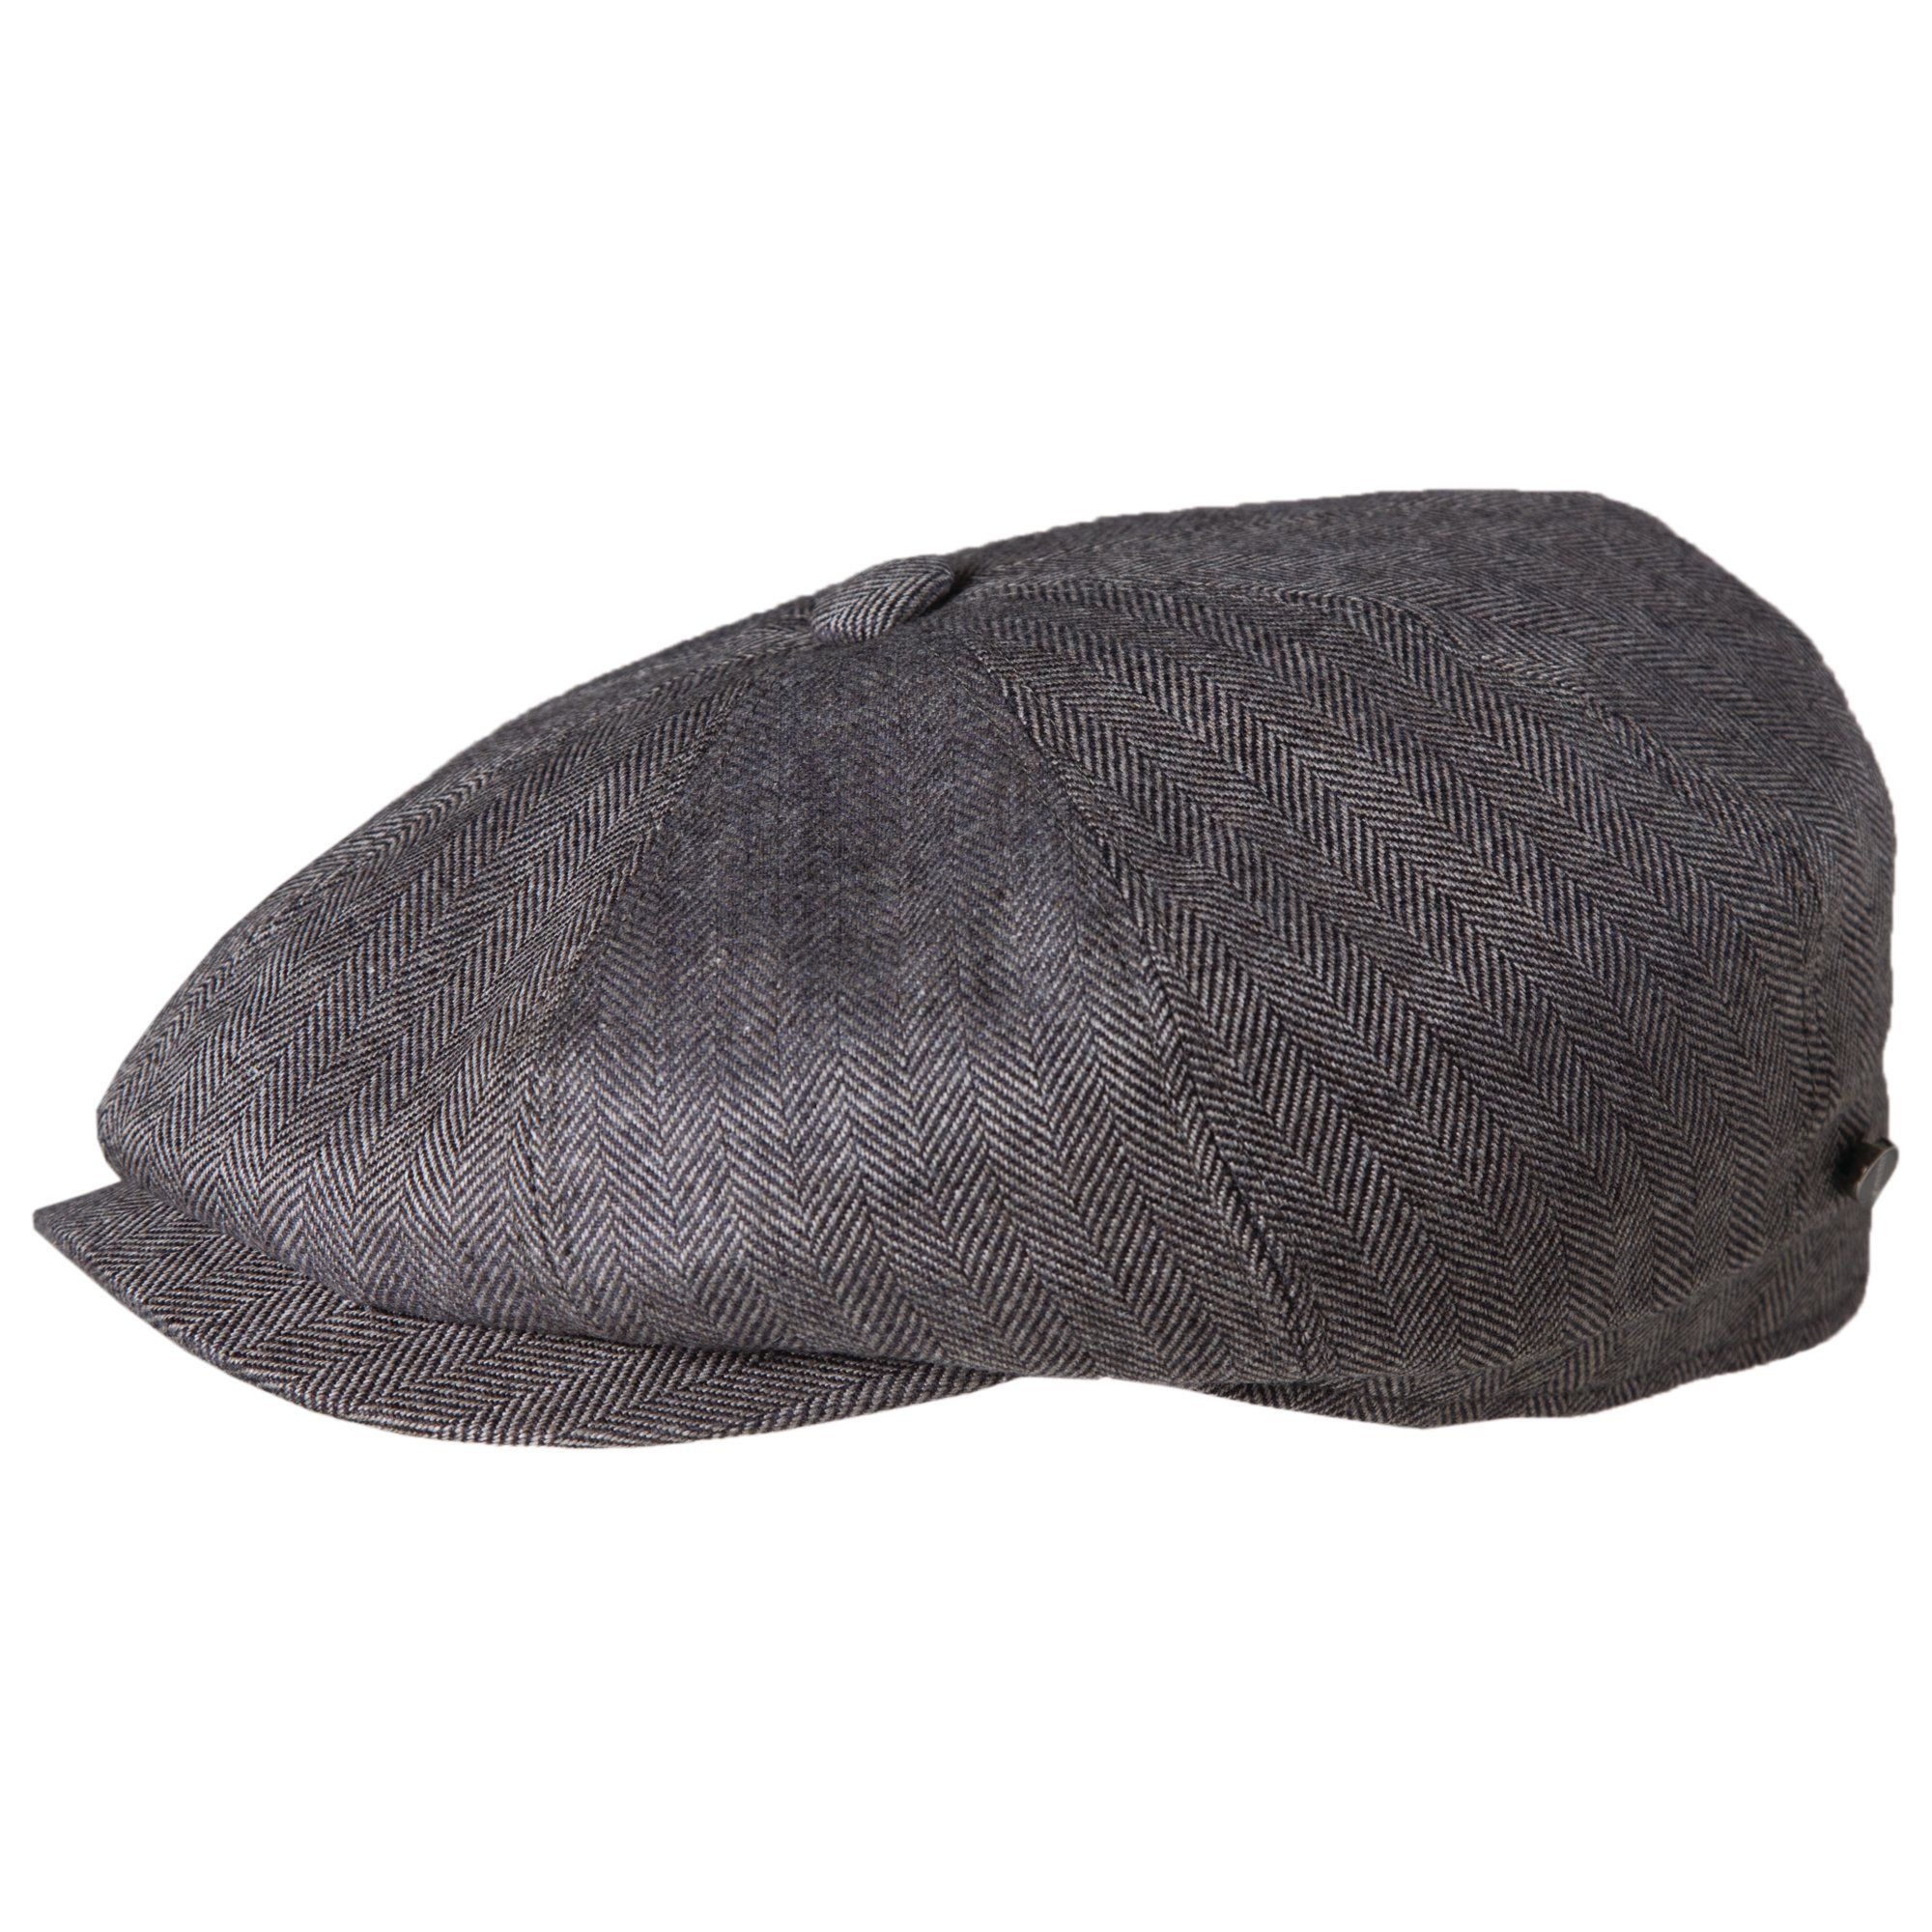 301cb0c5 This stylish newsboy cap is made of ultra- soft cashmere and silk. It is  lined with silk for comfort. This style of hat is also known as an 8/4 cap  because ...